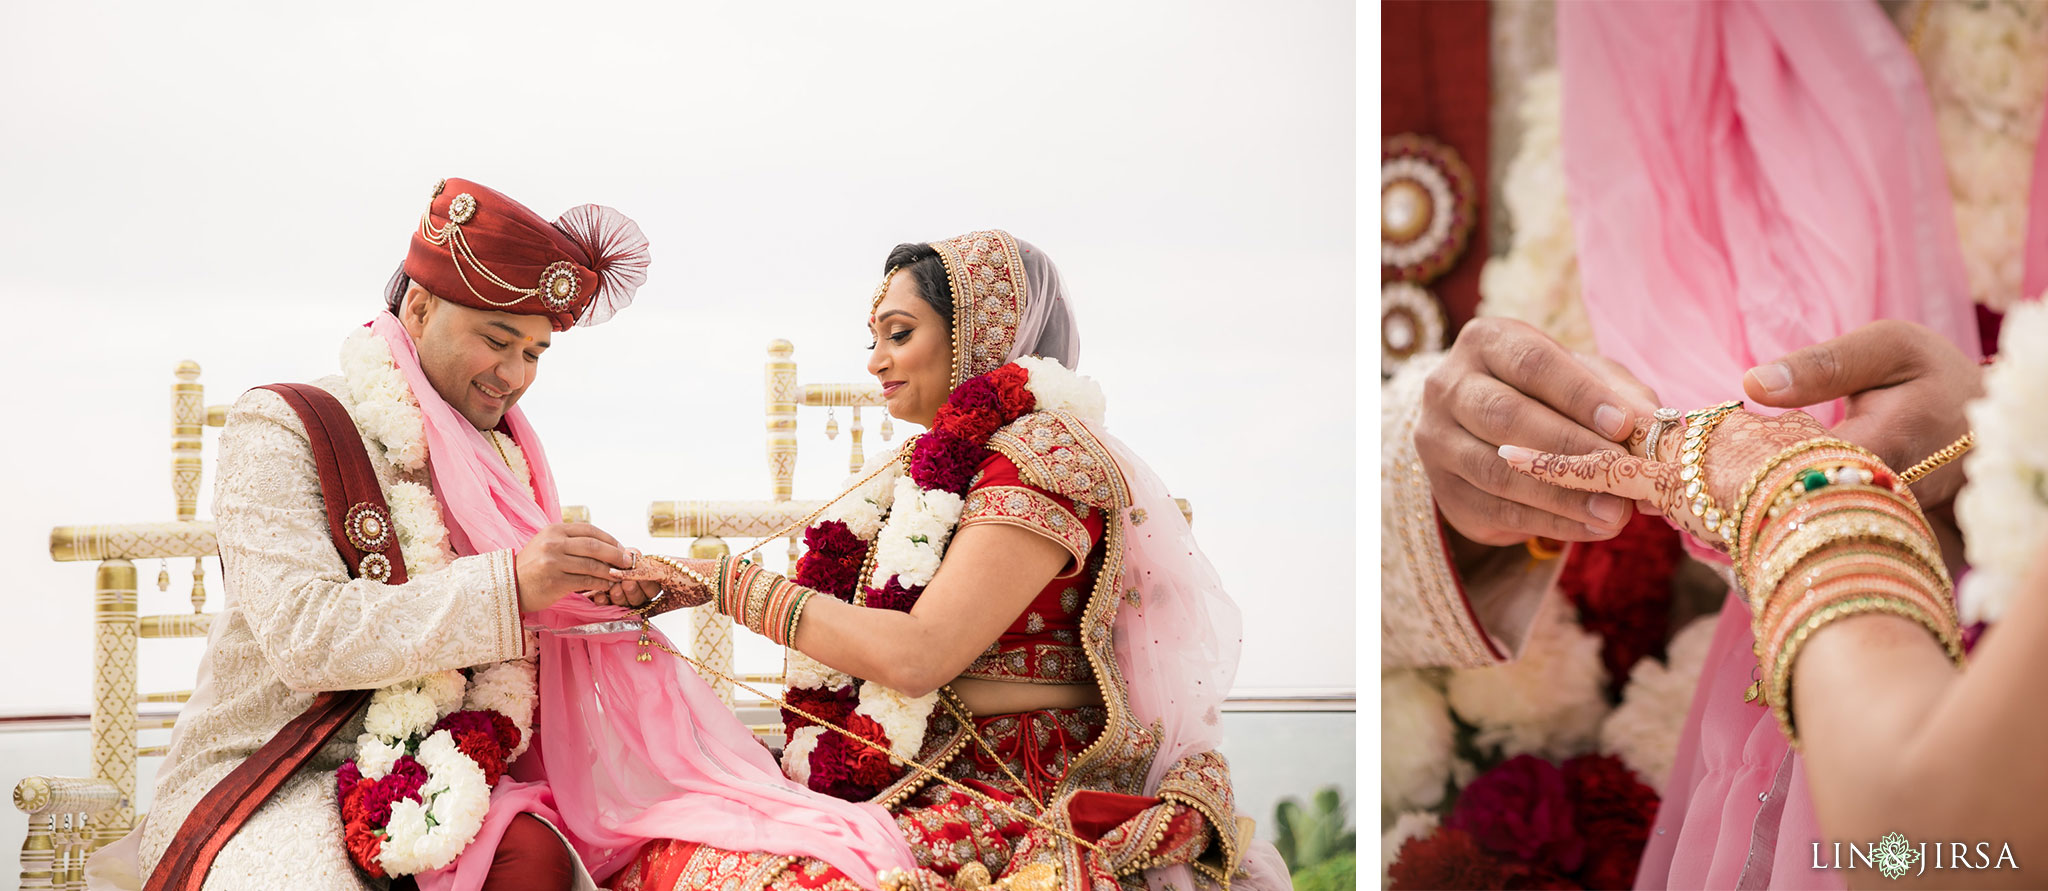 27 loews coronado bay resort indian wedding ceremony photography